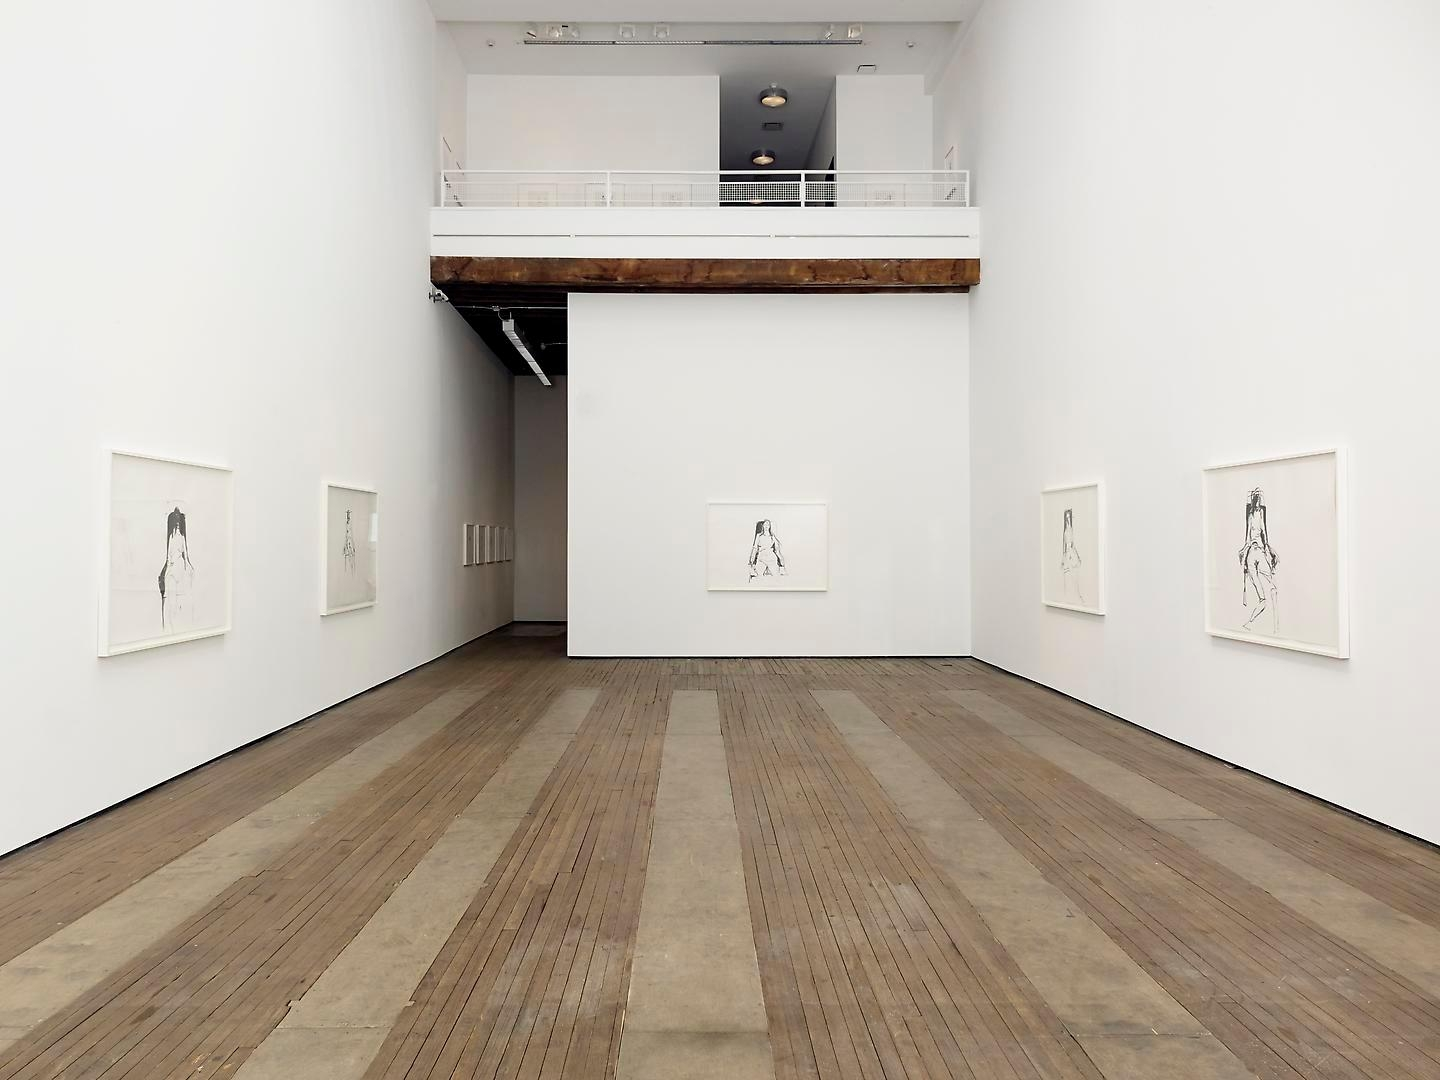 Tracey Emin: I Followed You To The Sun Installation view 3